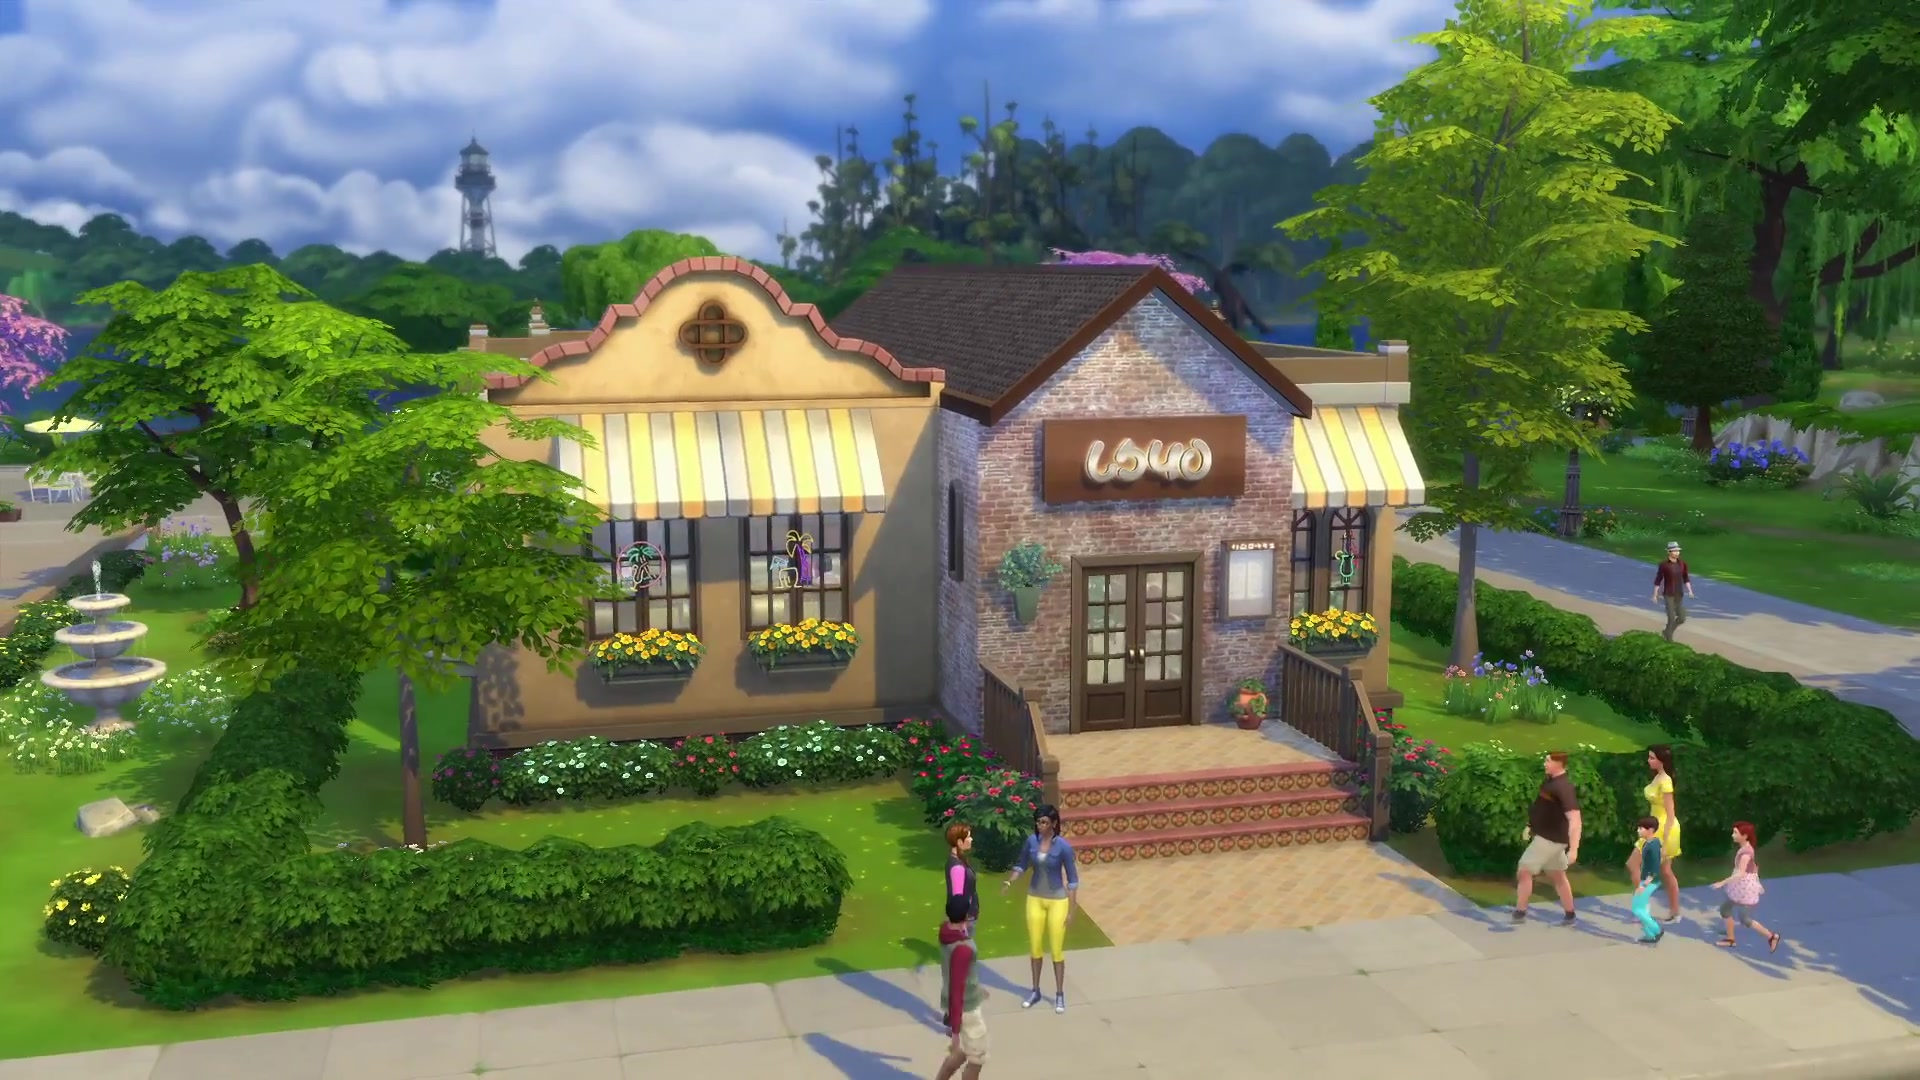 The Sims 4 Dine Out Own Restaurants Official Play Trailer 0425